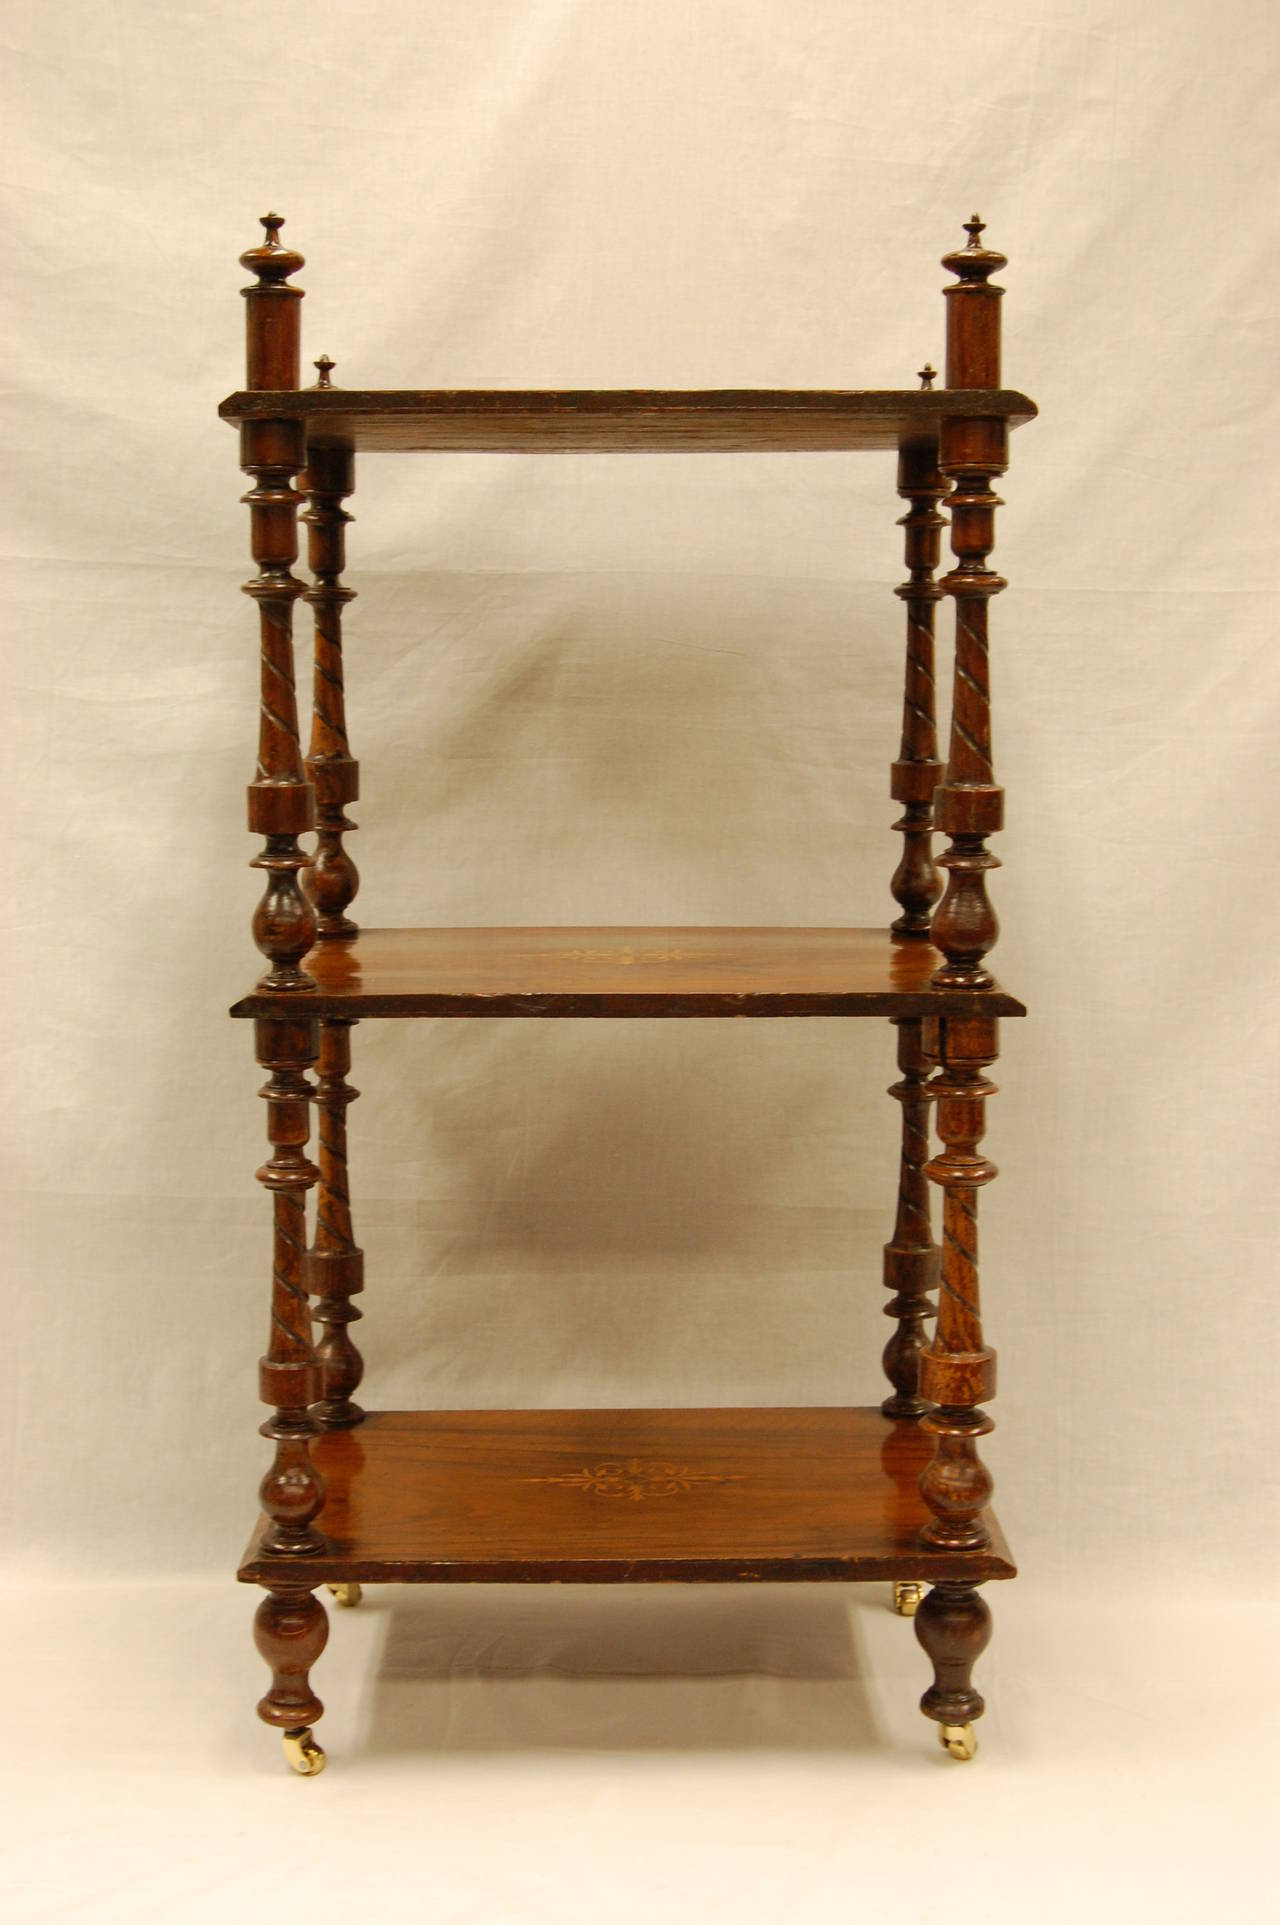 Early 19th Century Early Victorian Era Rosewood Book Stand with Satinwood Banding For Sale